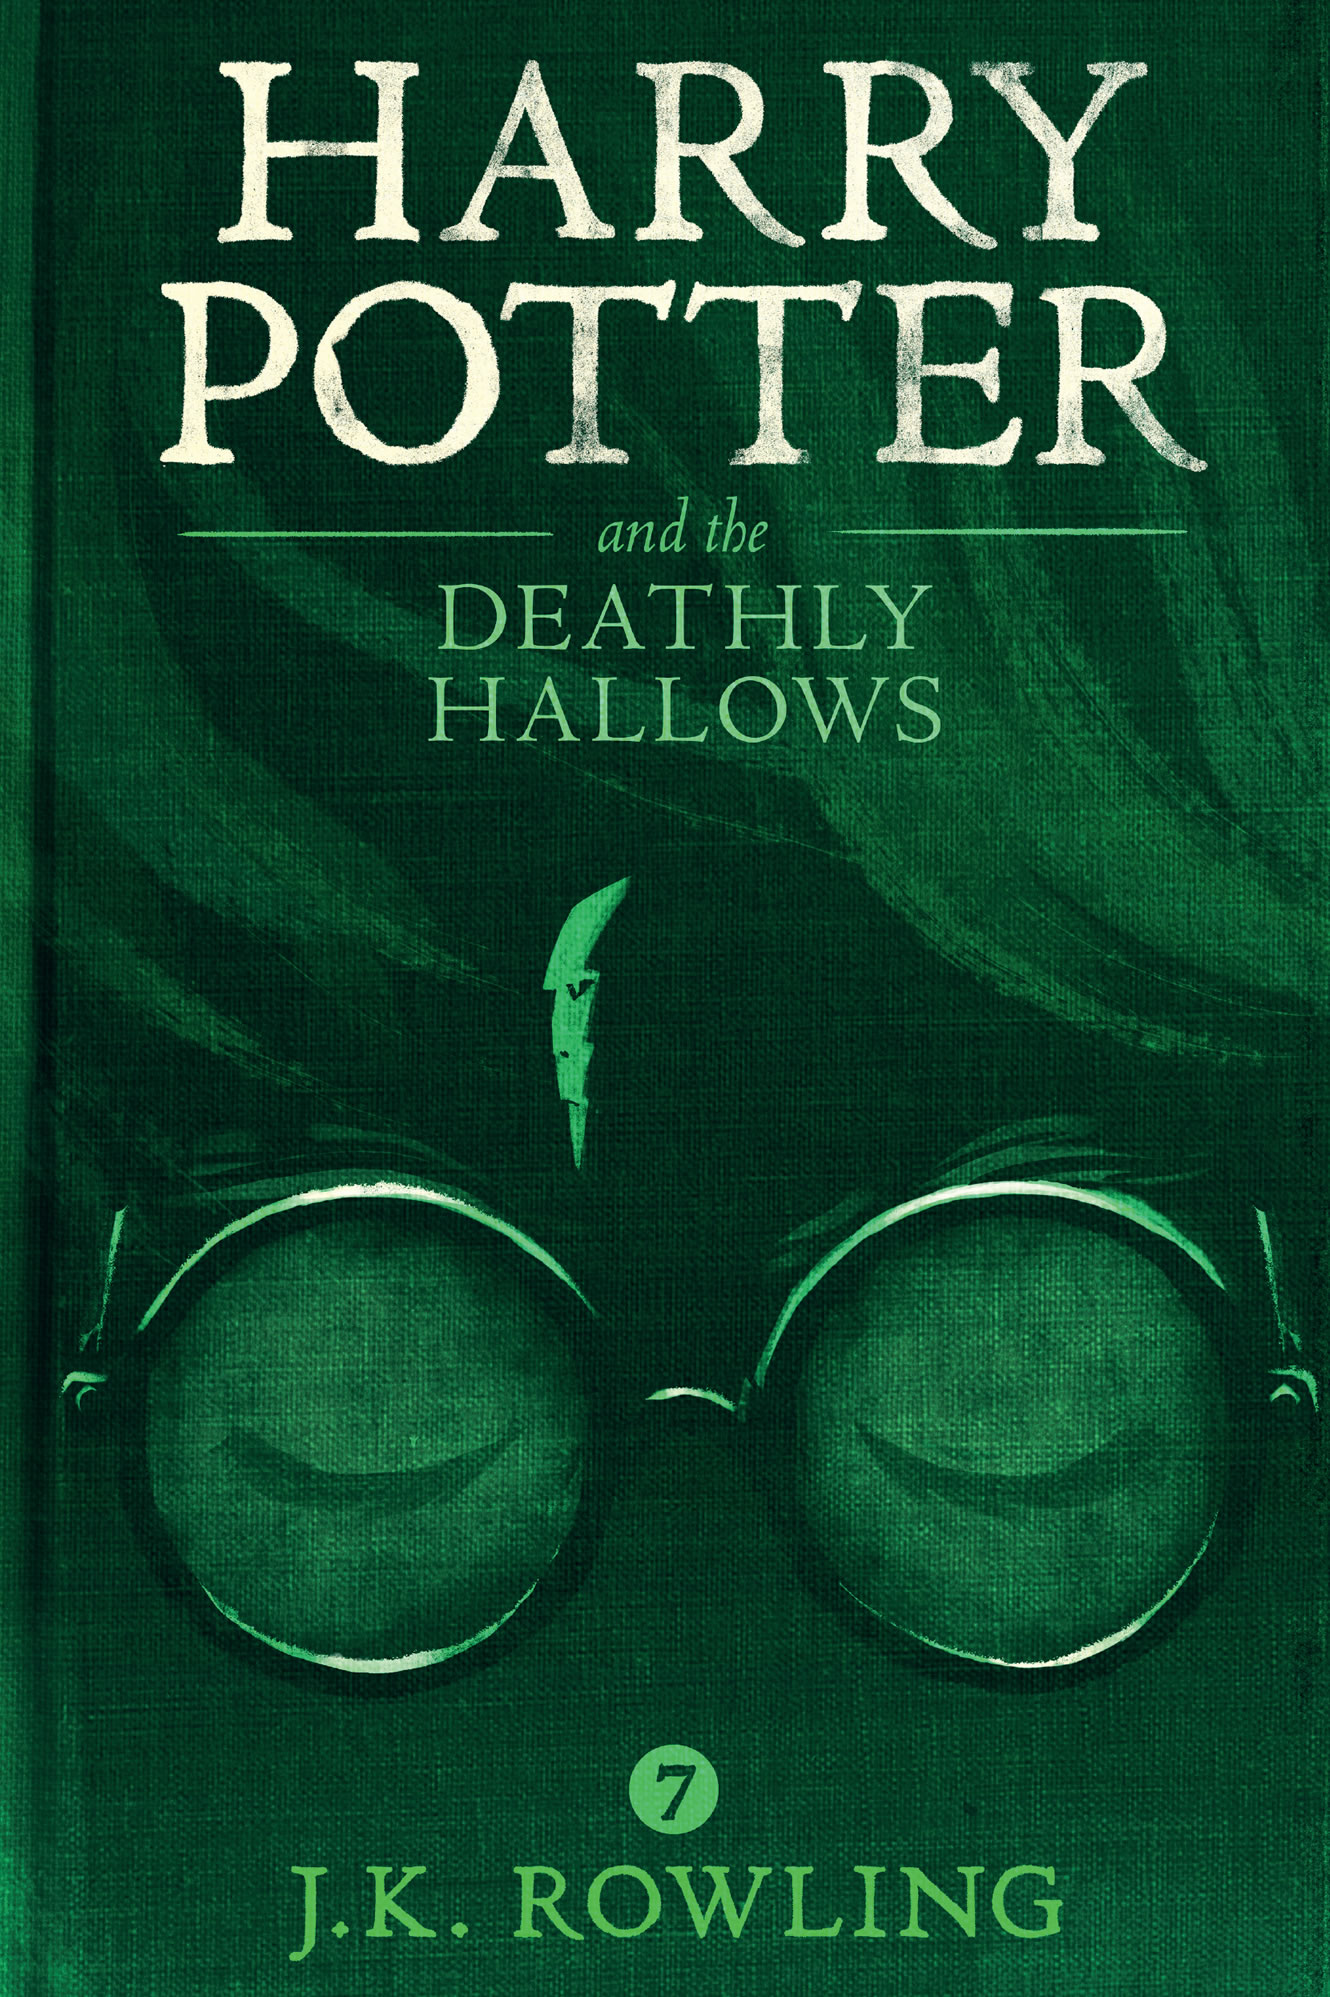 Olly Moss Deathly Hallows cover